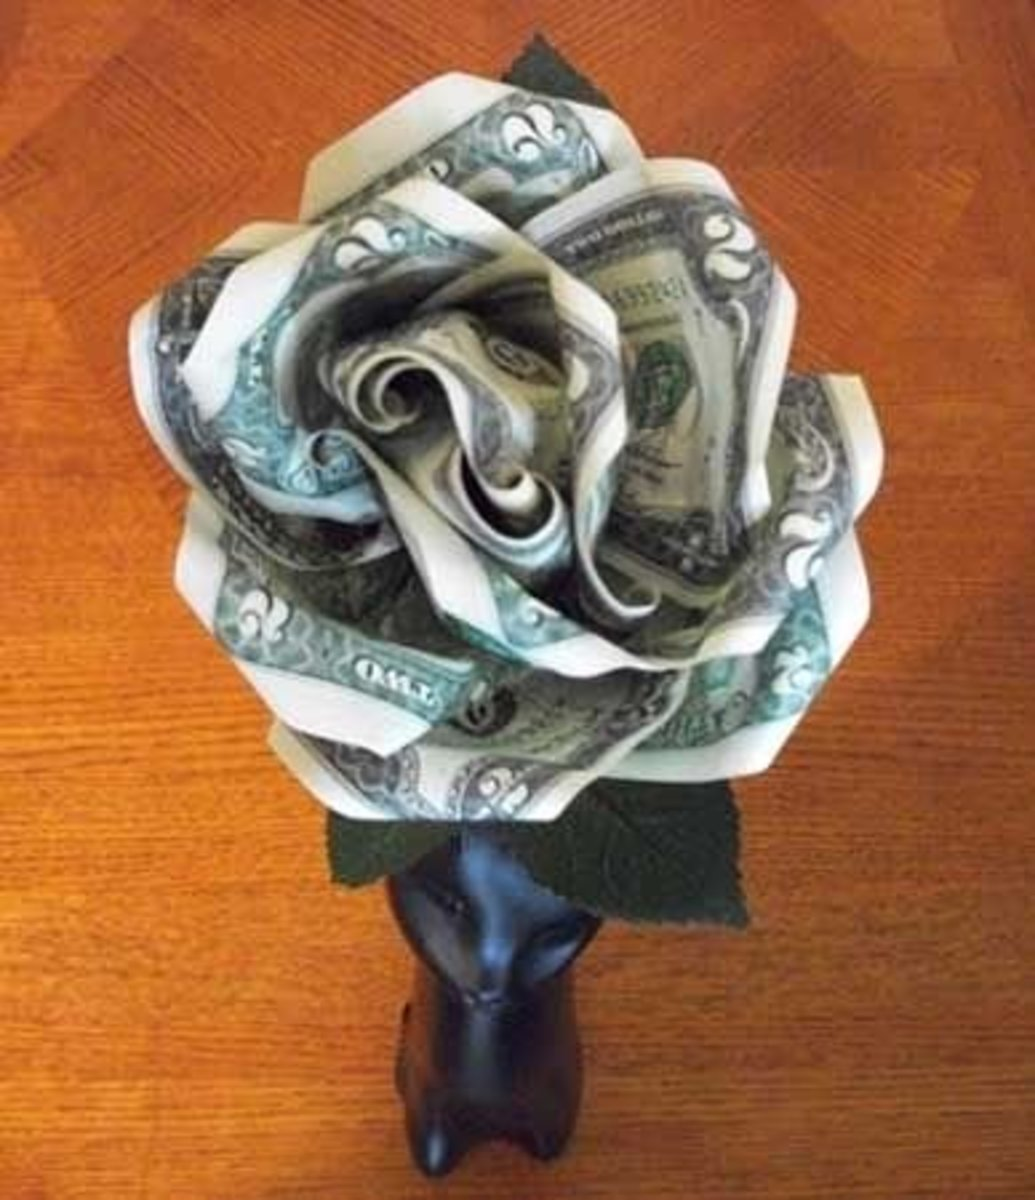 Here's a photo of the finished money rose. Look how beautiful it is!